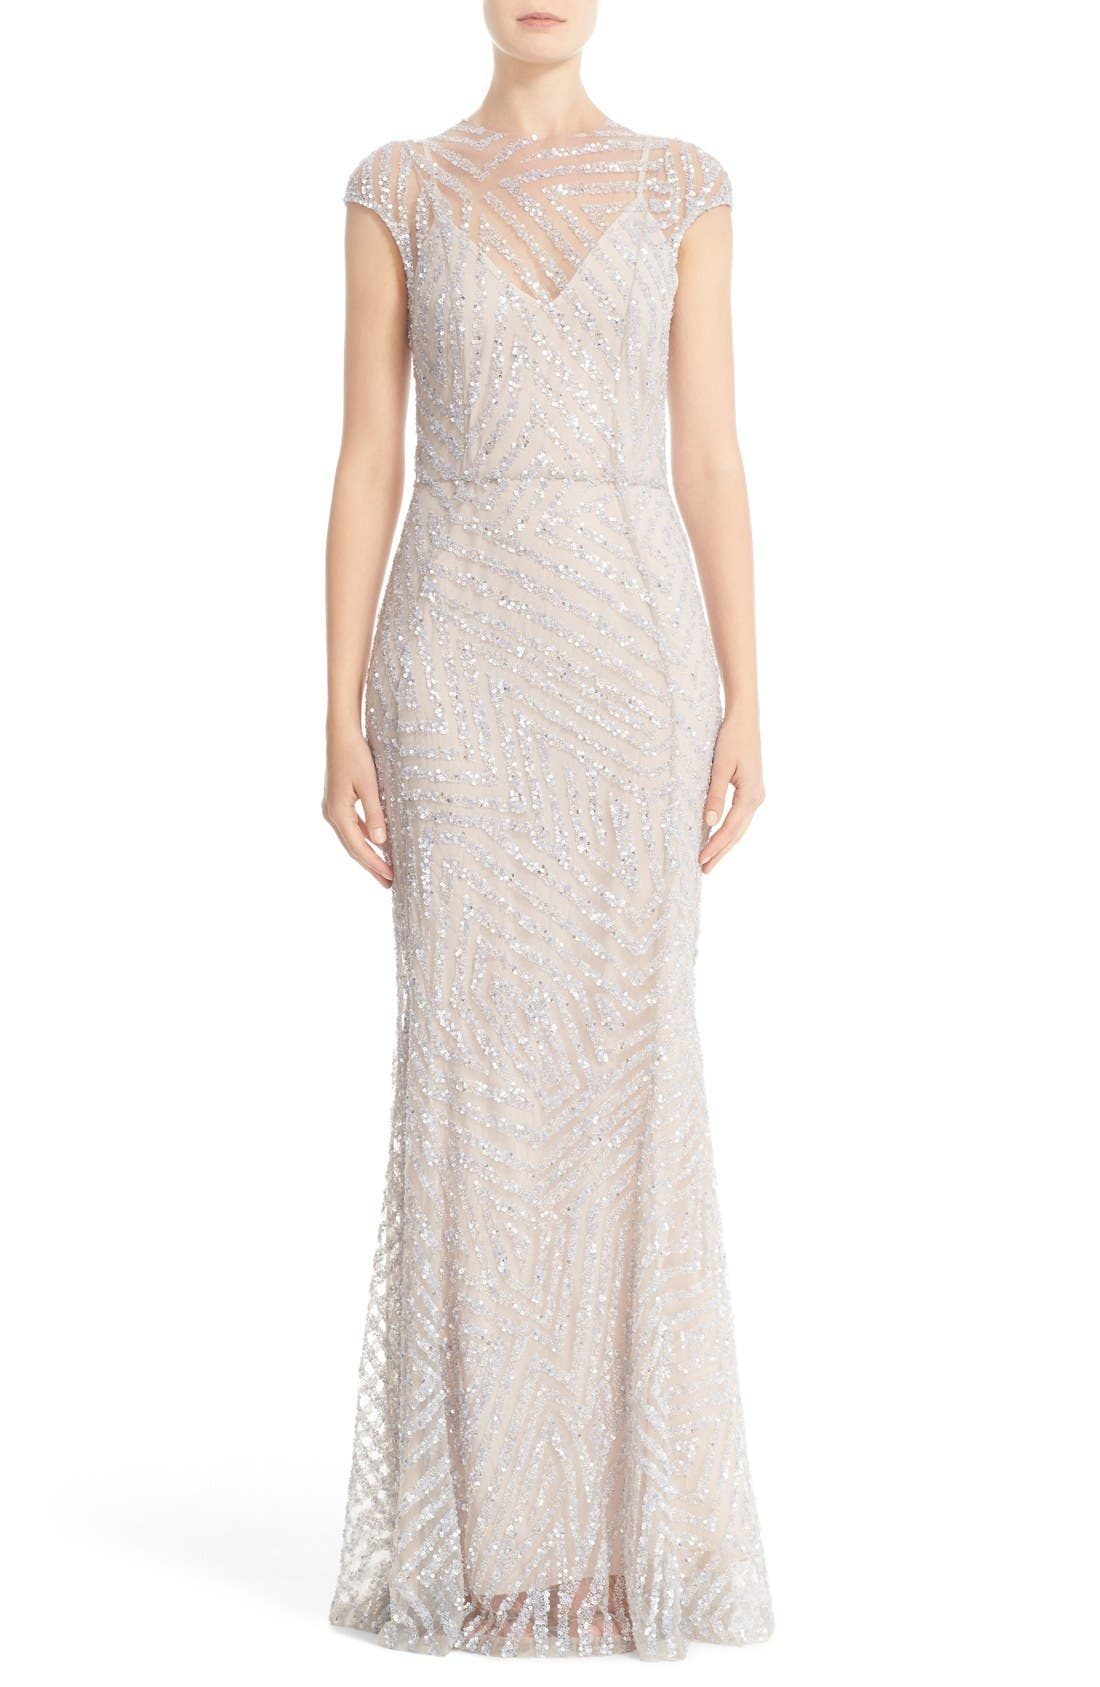 Hand Embellished Cap Sleeve Mermaid Gown,                         Main,                         color, Silver